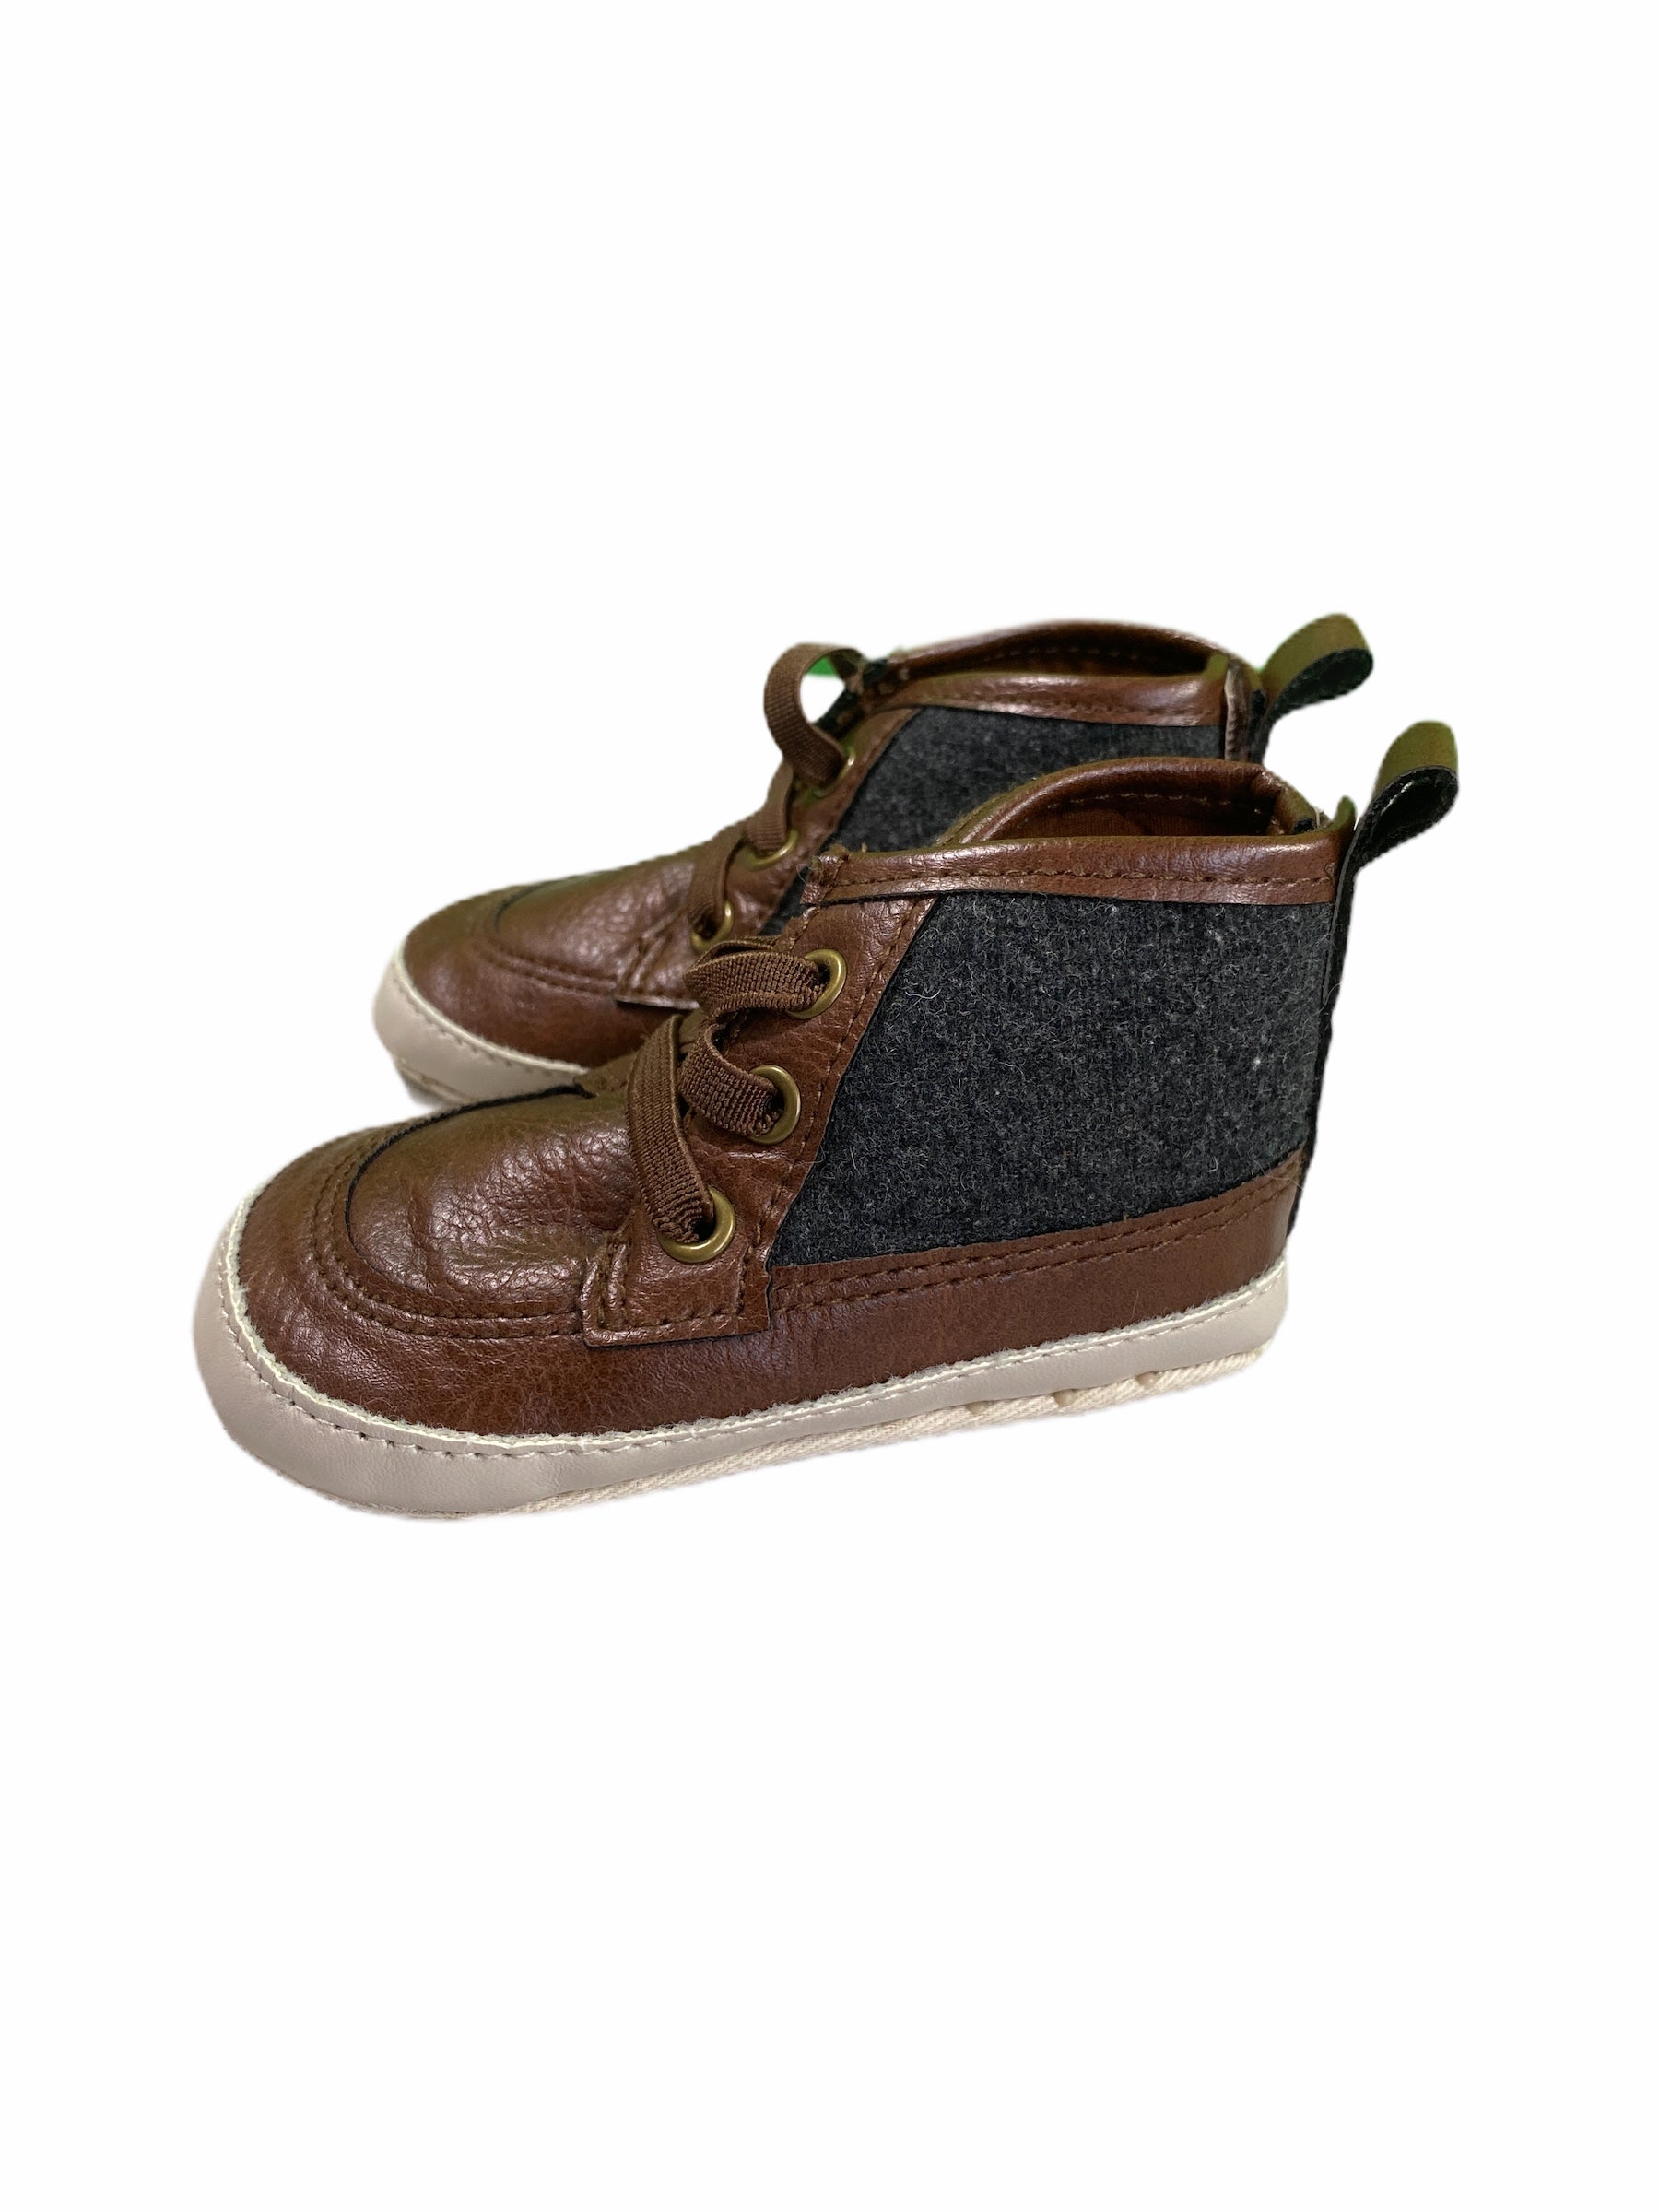 Old Navy Brown High Tops (size 2/3)